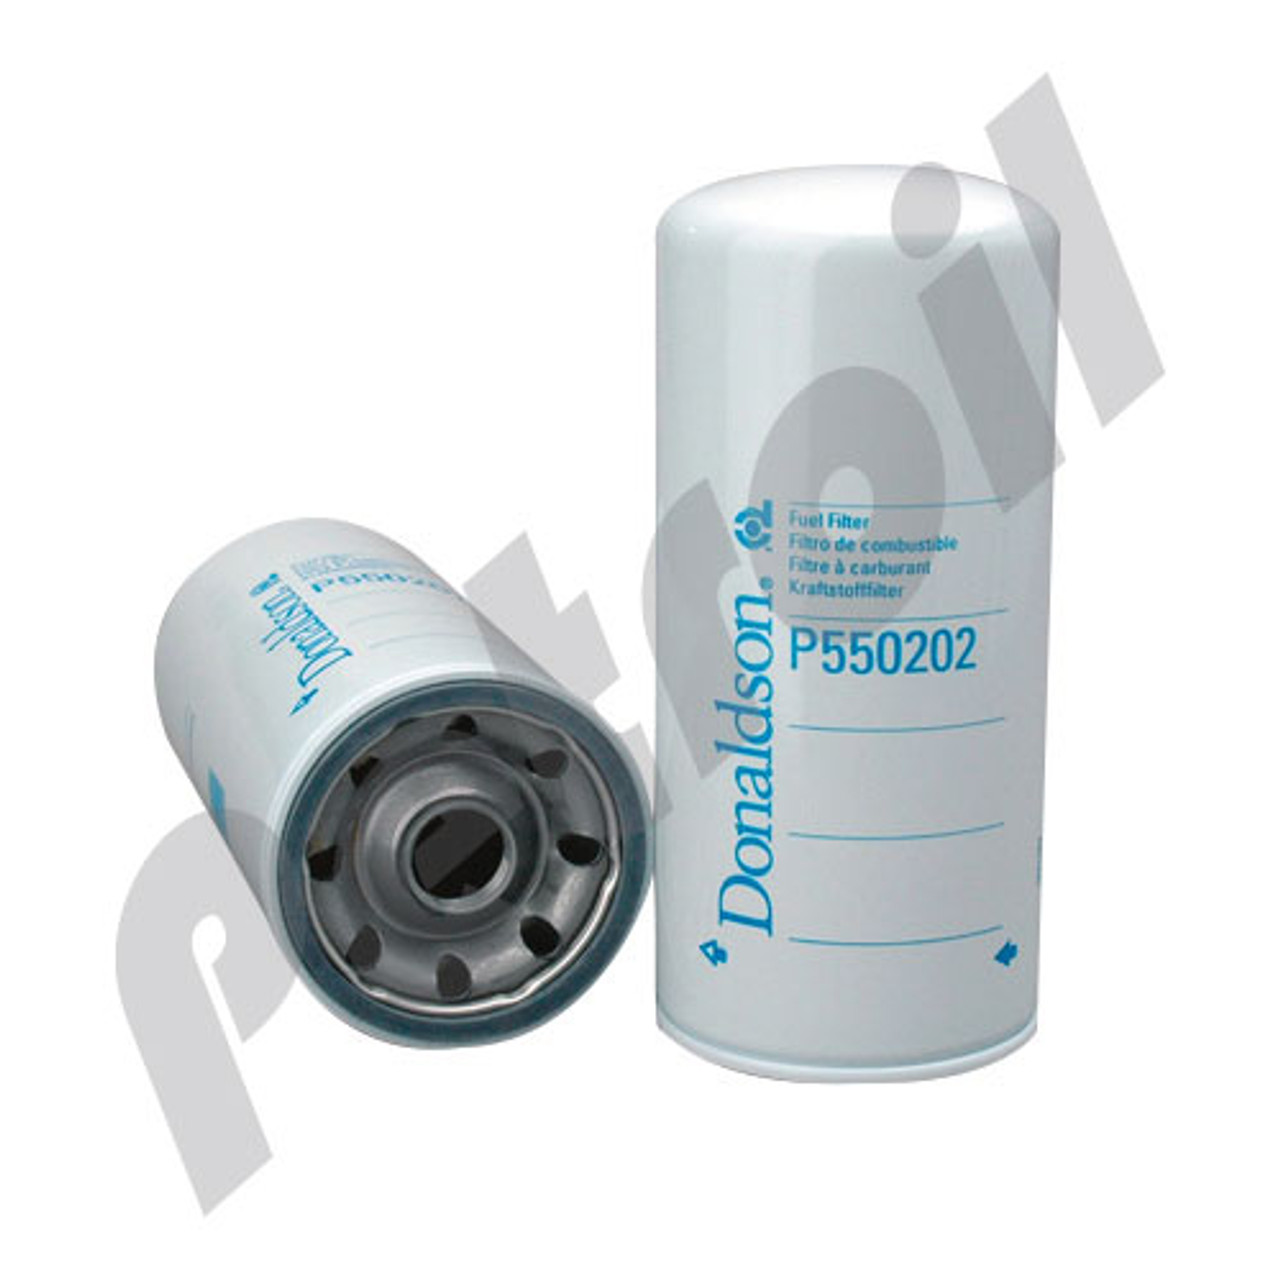 DONALDSON P557440 FUEL FILTER SPIN-ON